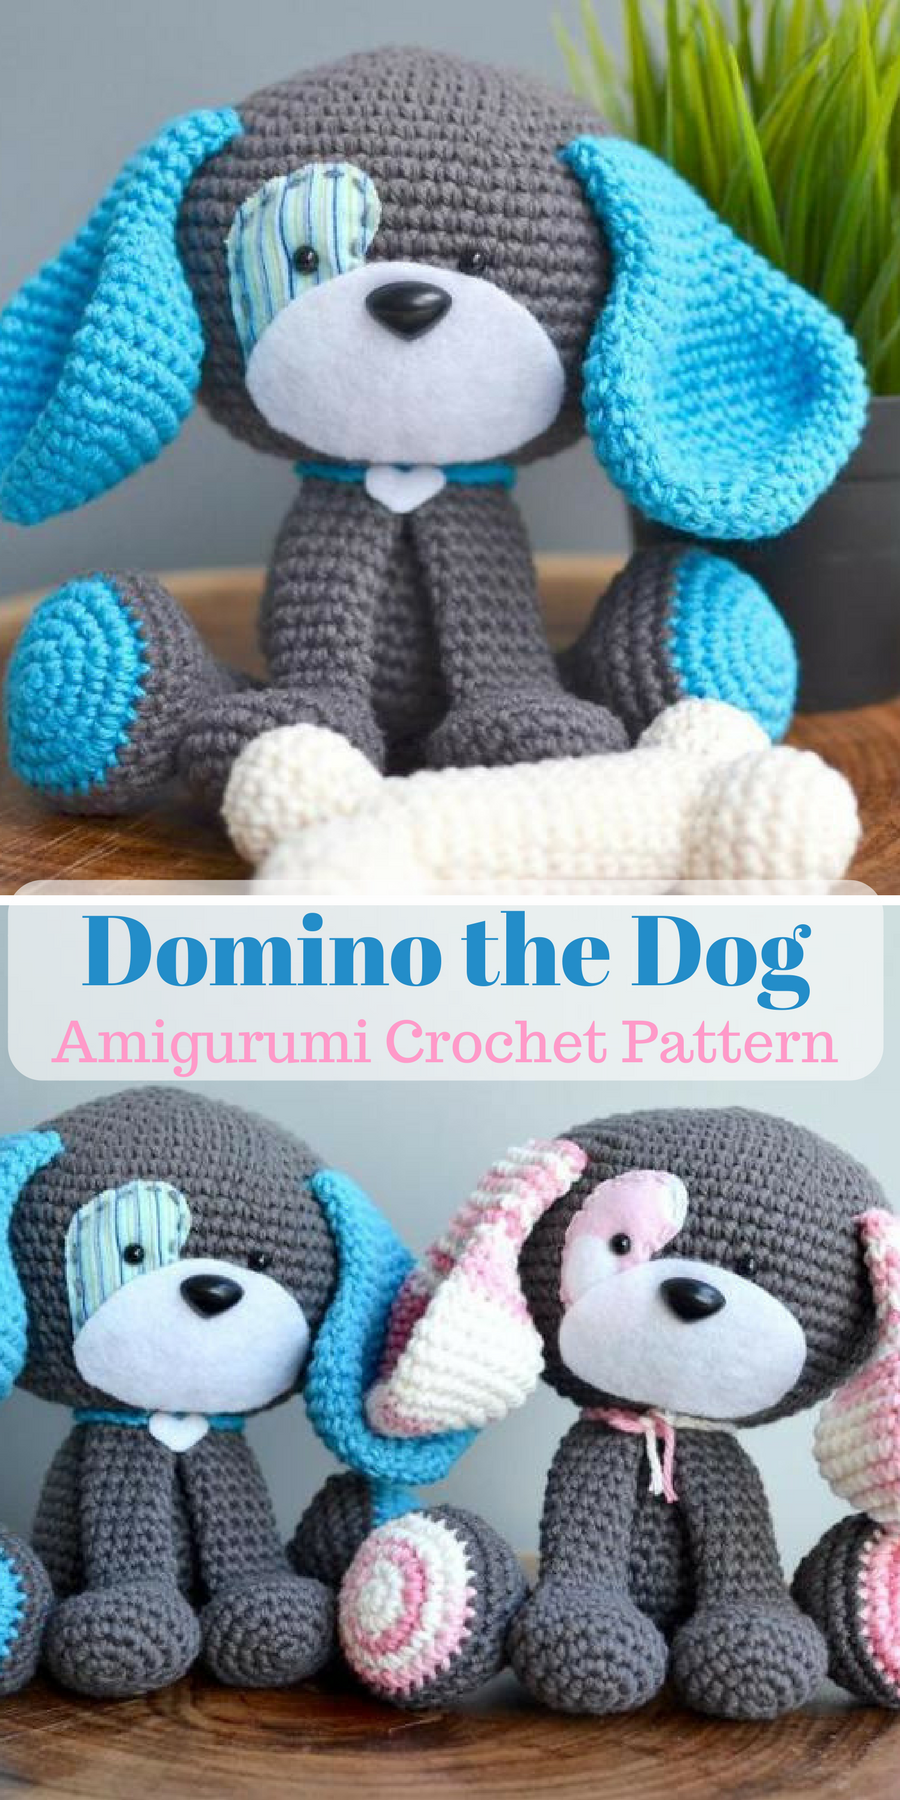 This cute dog crochet pattern is the perfect amigurumi project for ...